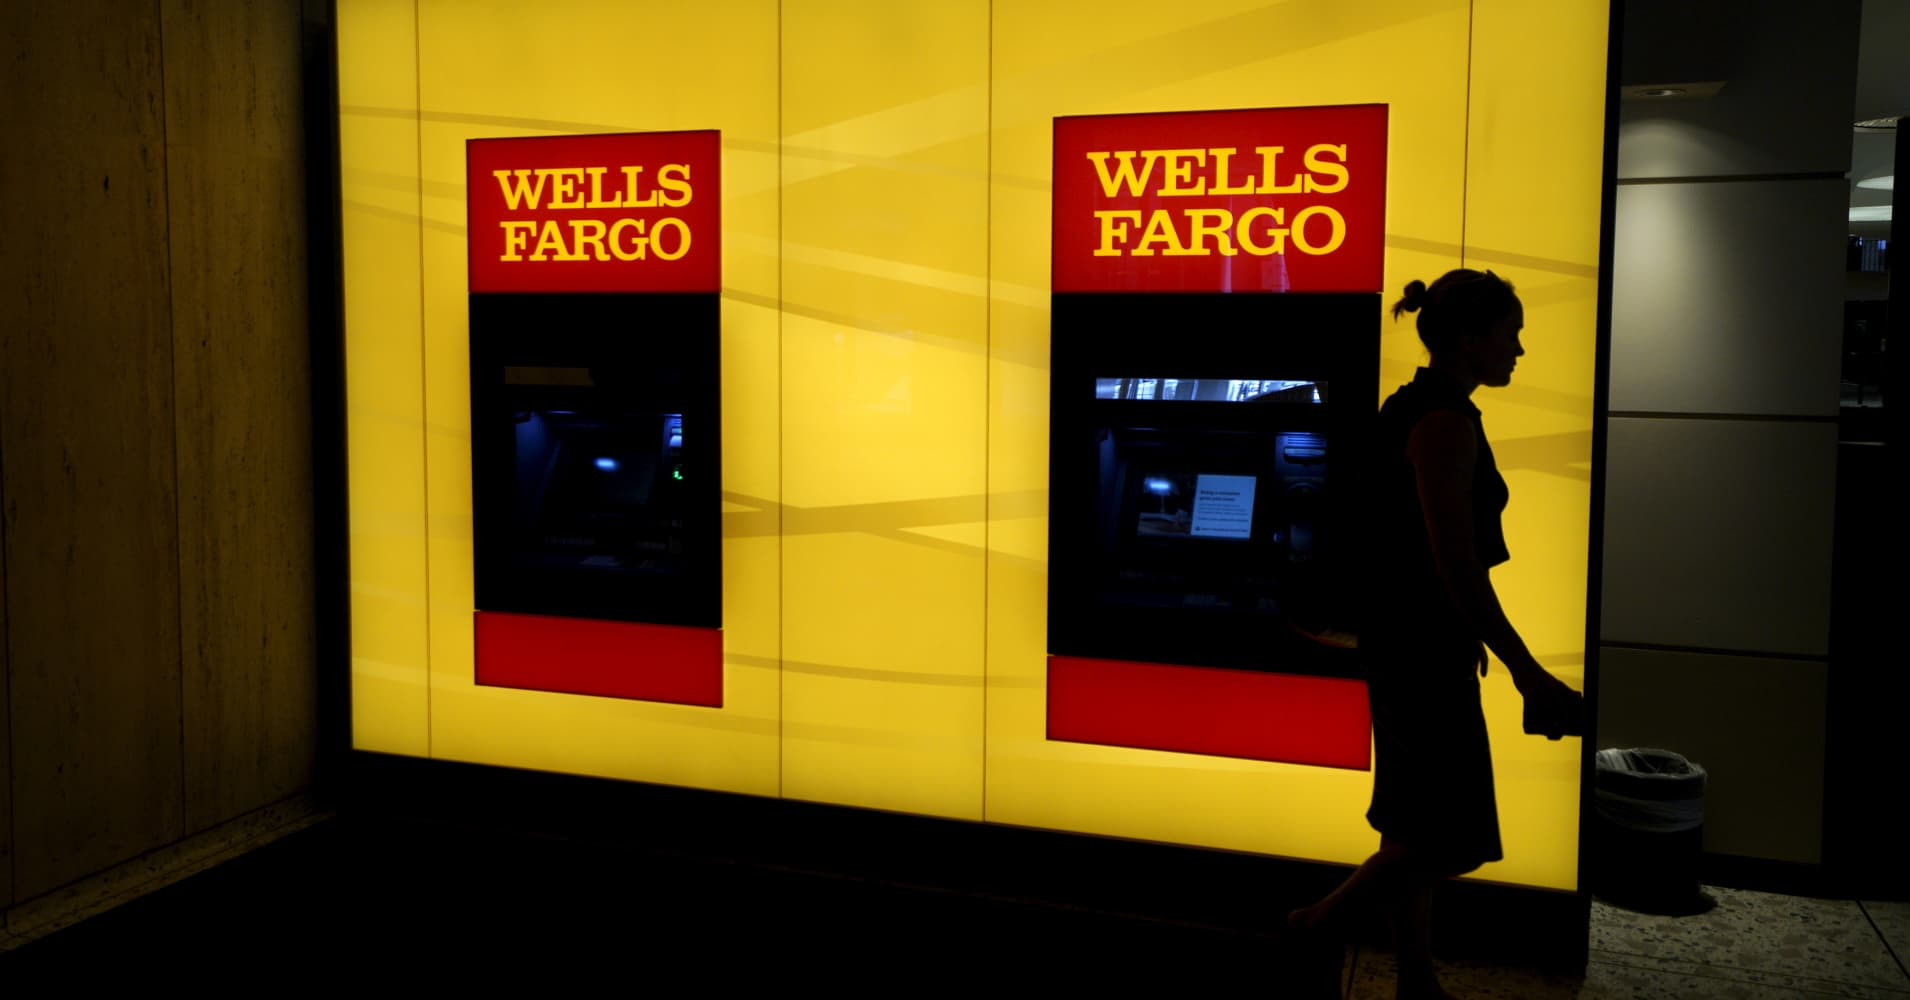 Wells Fargo Just Lost Its Accreditation With The Better